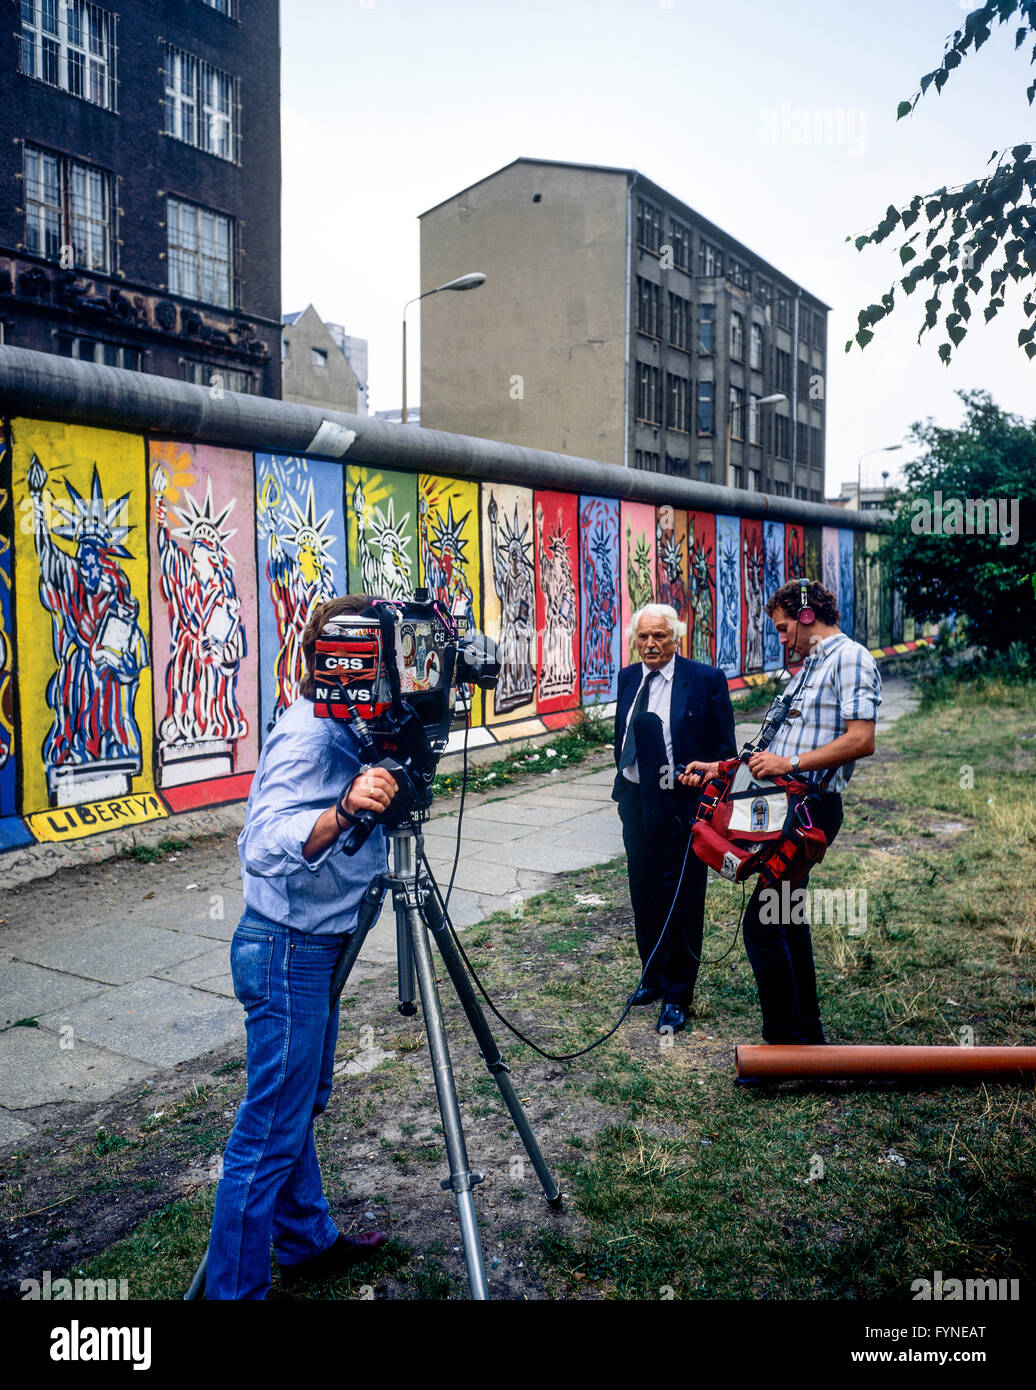 August 1986, CBS TV crew conducting an interview in front of Berlin Wall decorated with Statue of Liberty frescos, - Stock Image